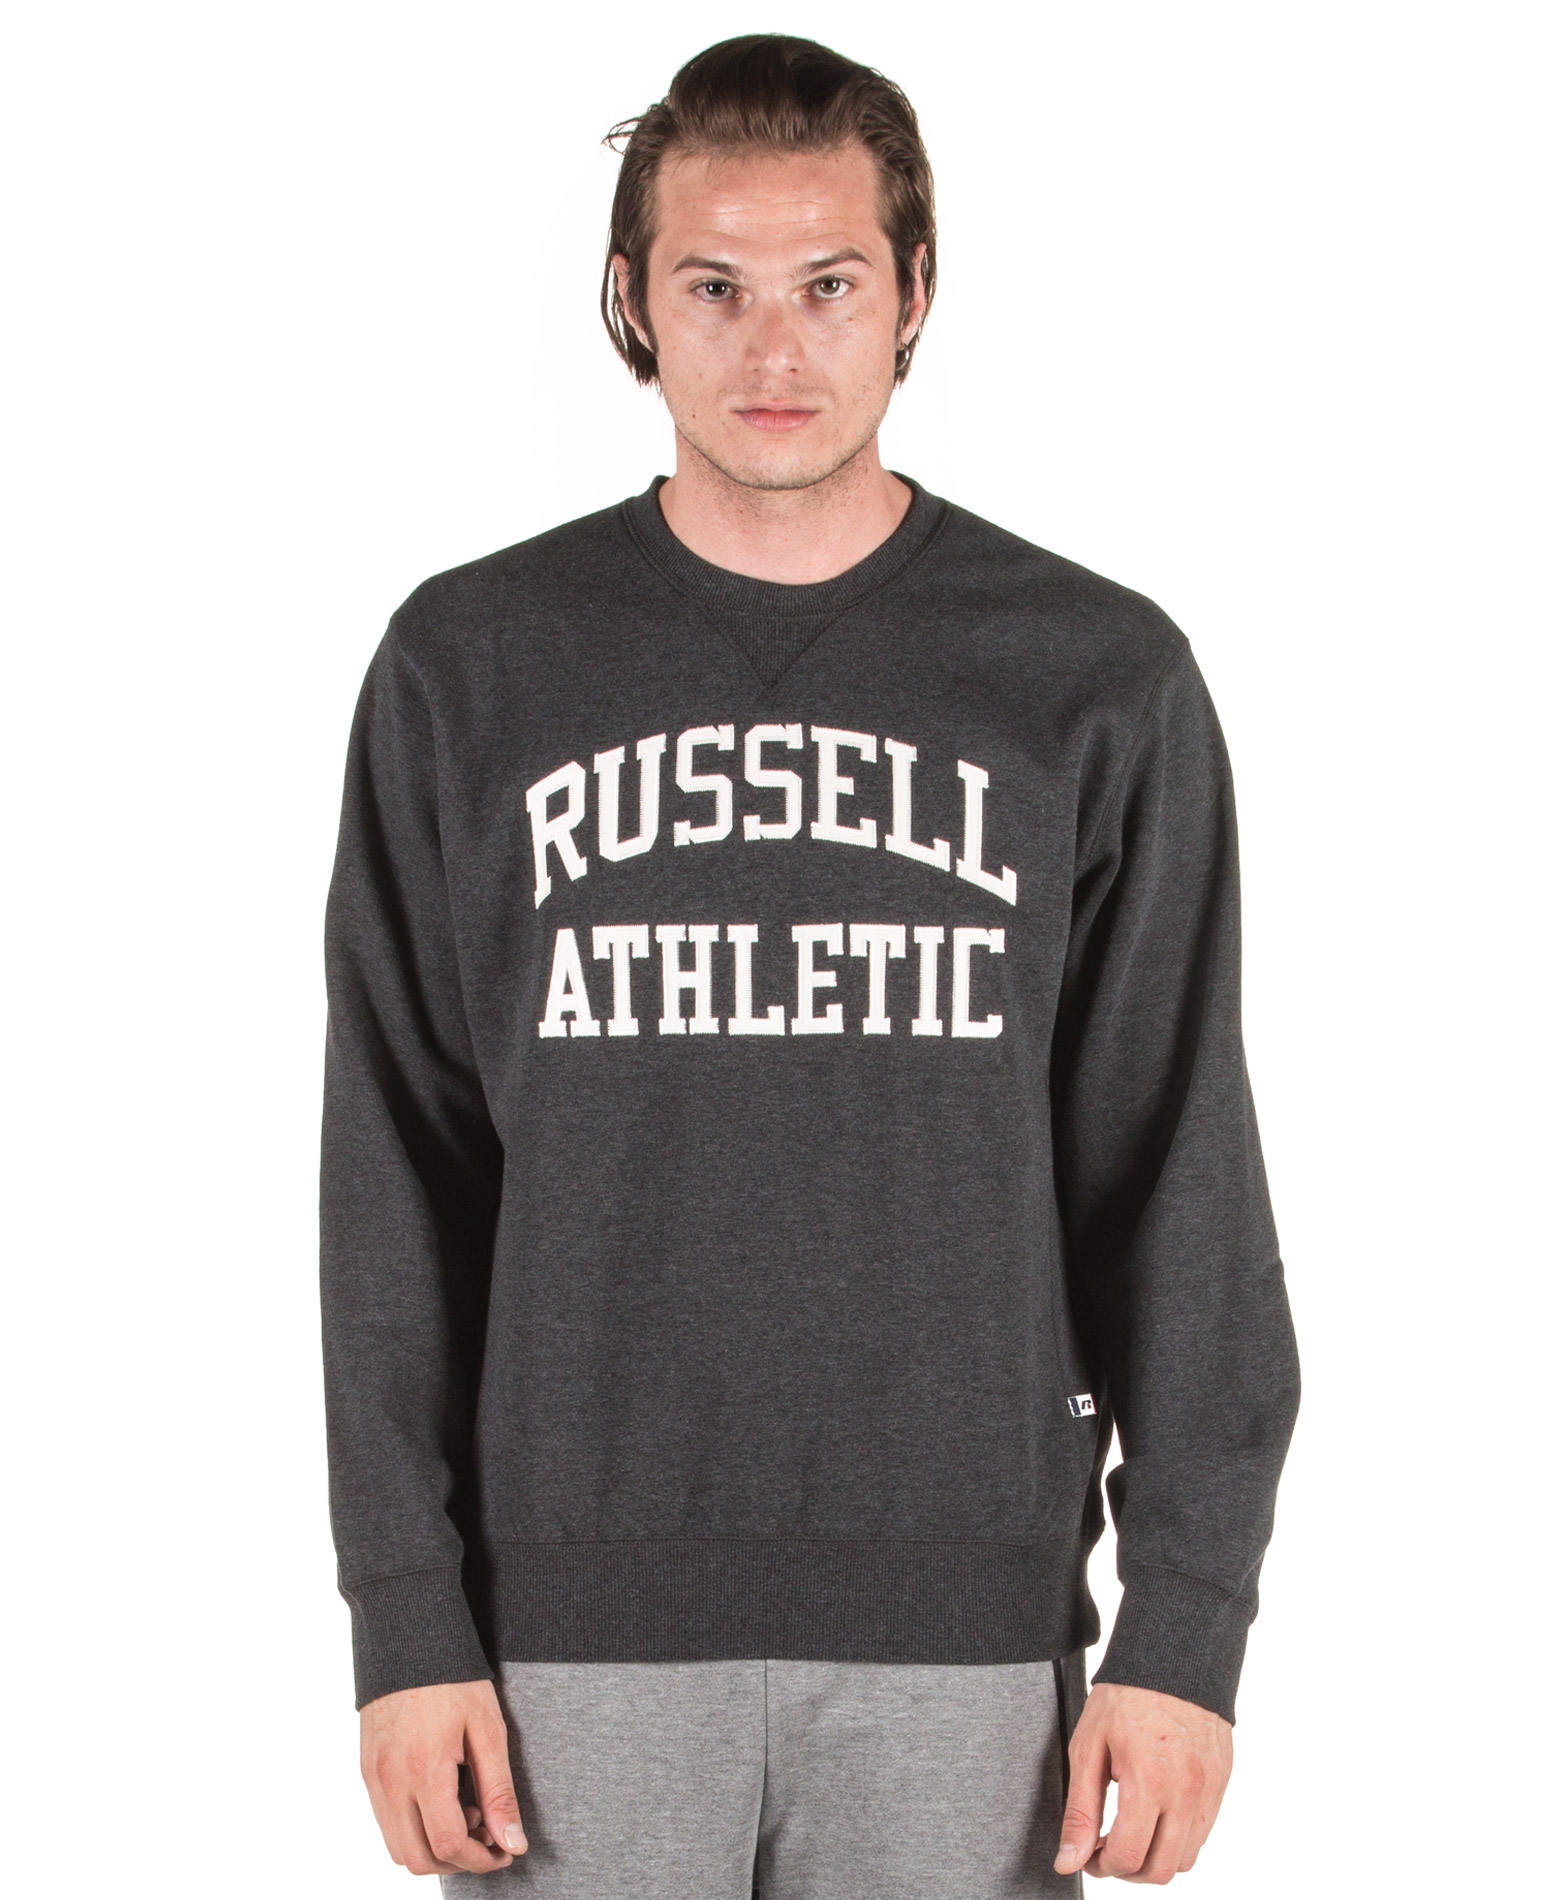 Russell Athletic A8-005-2-098 Ανθρακί